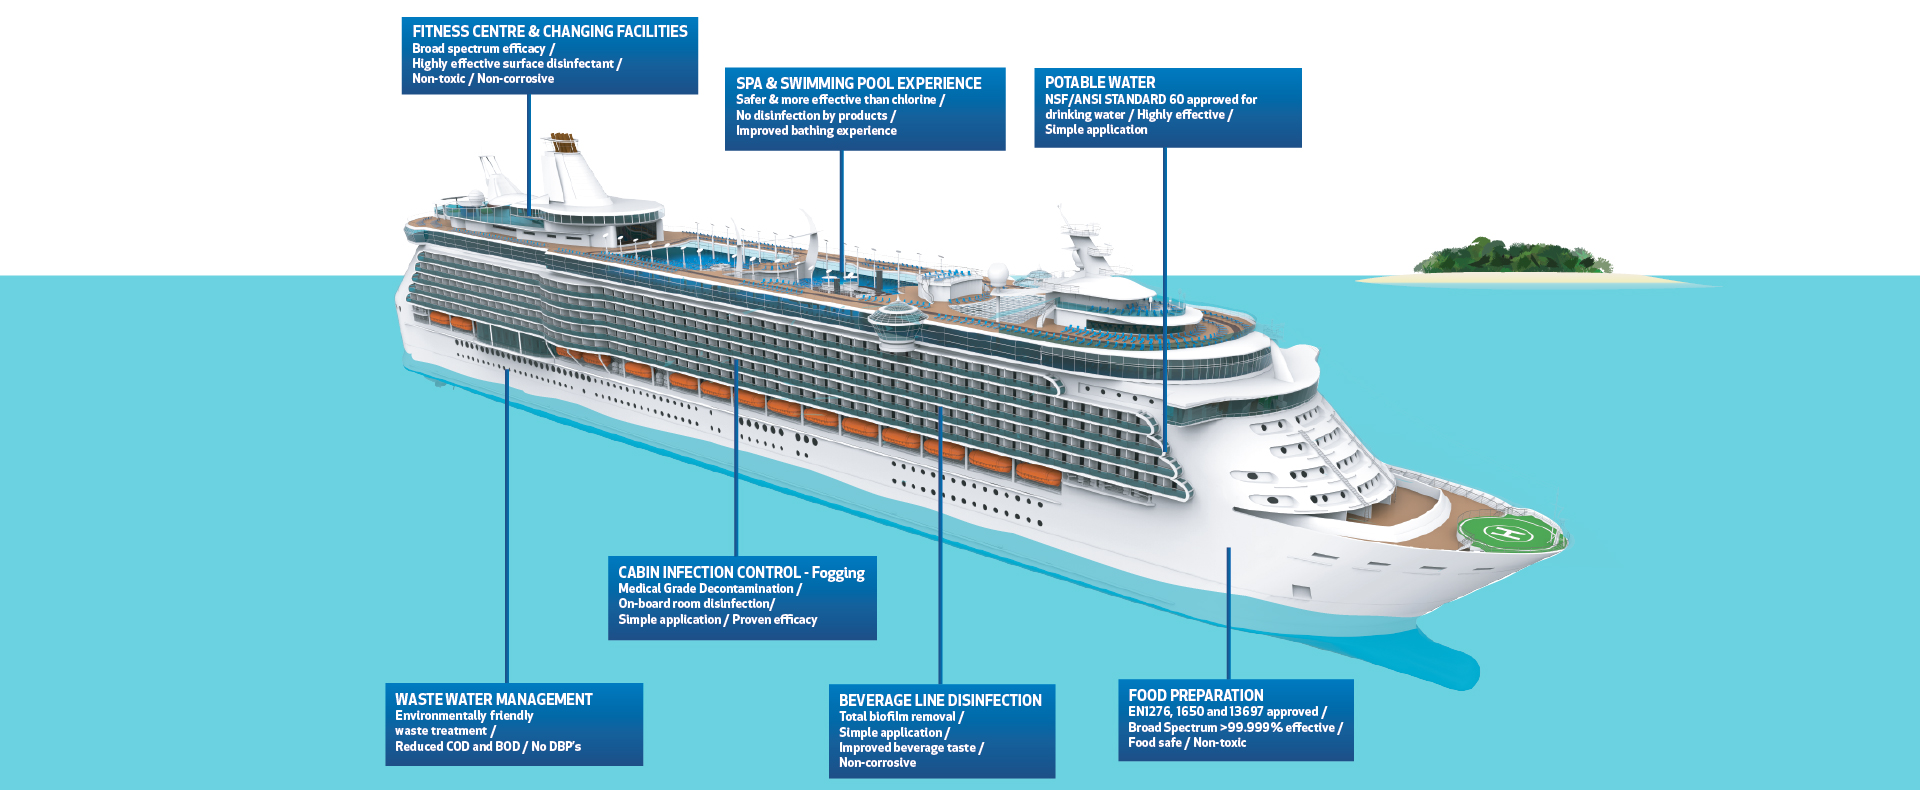 The uses of EndoSan onboard a cruise liner or ferry